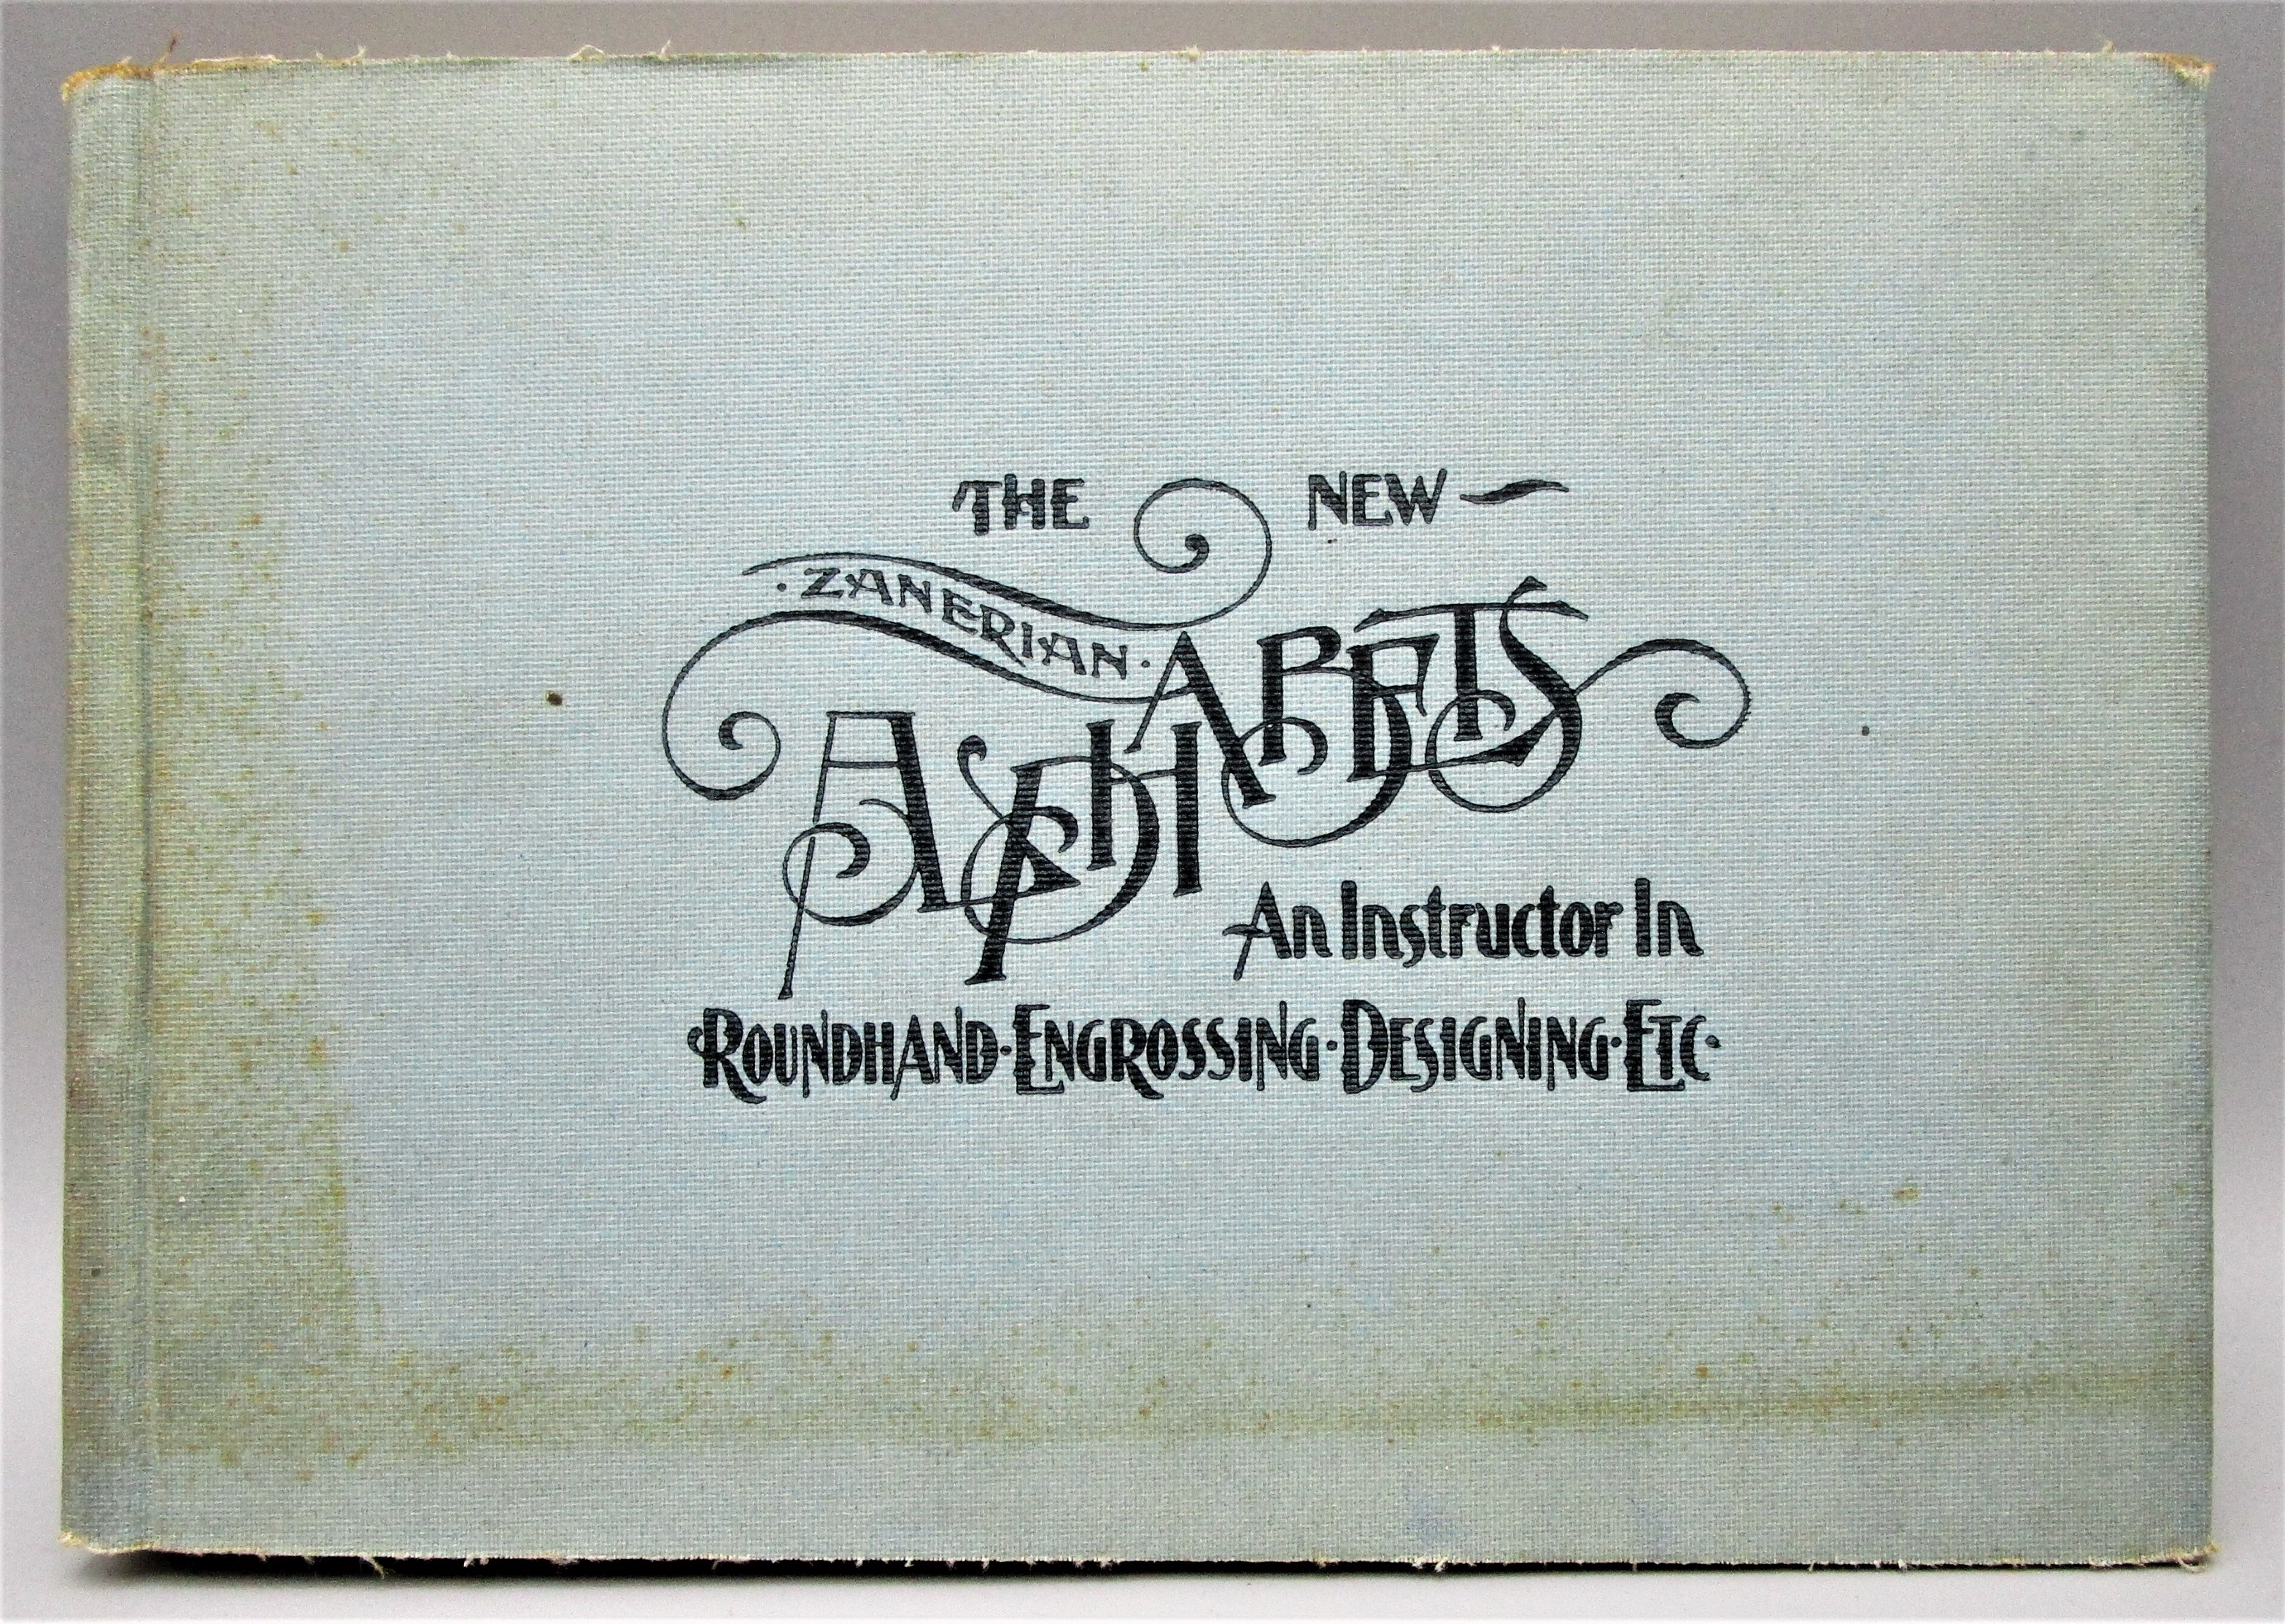 THE NEW ZANERIAN ALPHABETS, by C.P. Zaner - 1910